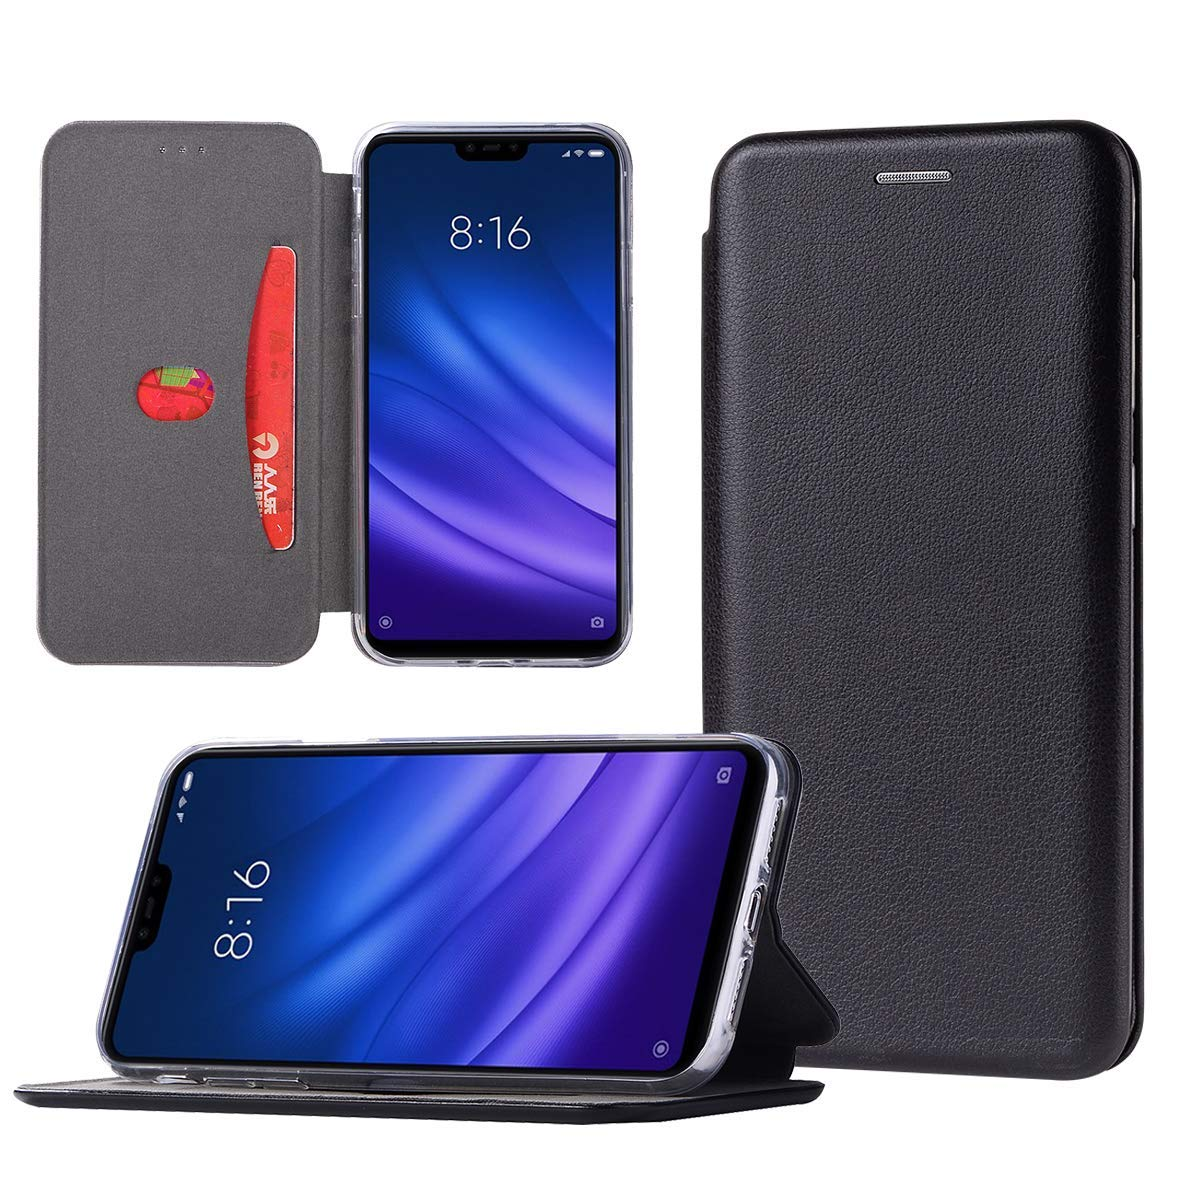 Shemax Compatible with Xiaomi Mi8 Lite Case,Cover Pouch PU Leather Flip with Magnetic Closure, Stand Function and Card Slot Bumper for Xiaomi Mi 8 Lite-Black